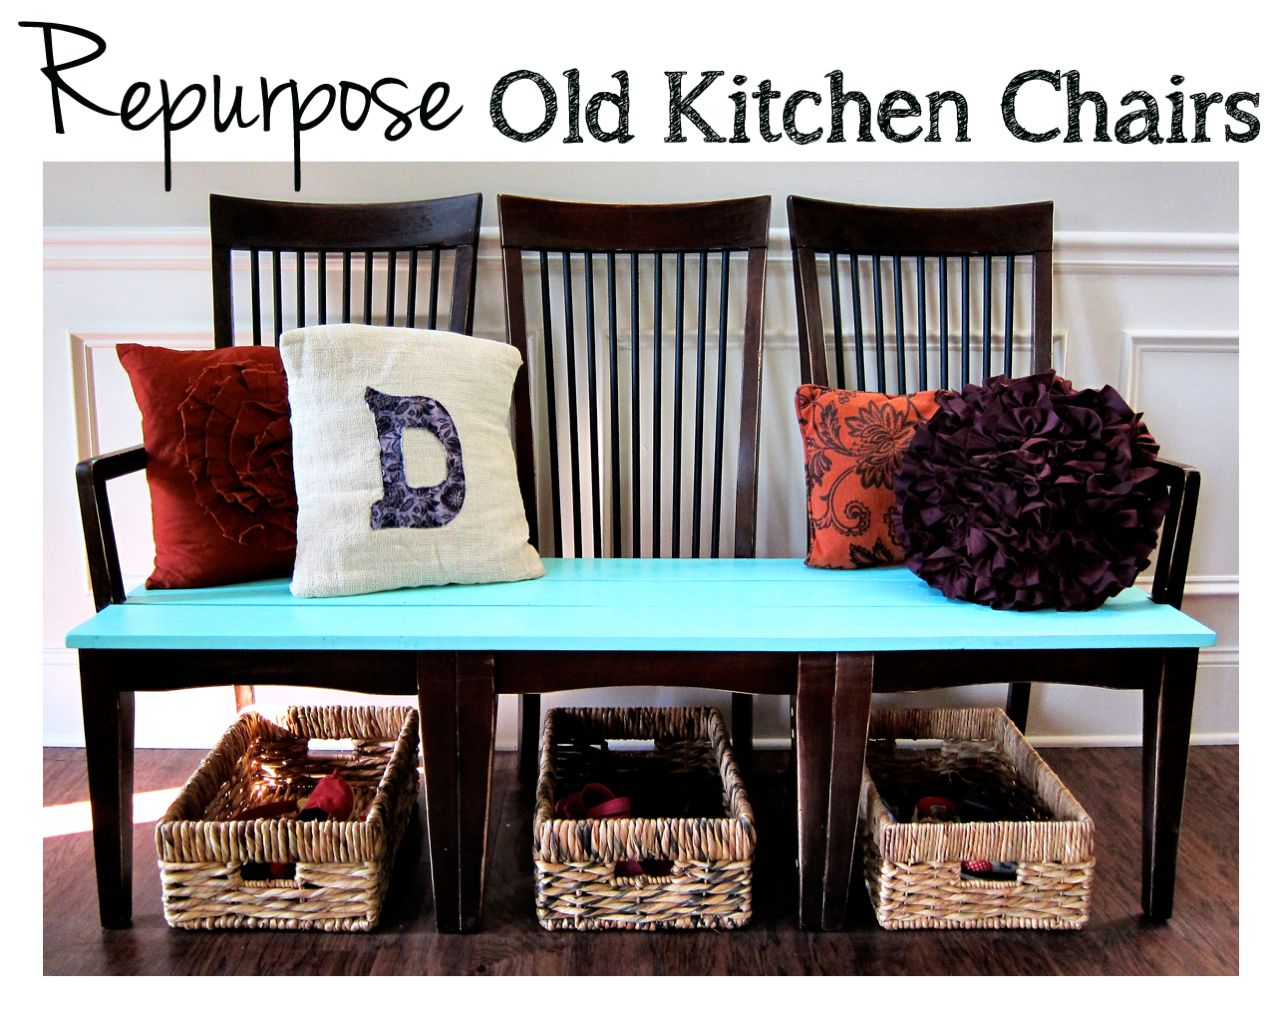 Repurpose Old Kitchen Chairs Spoonful Of Imagination